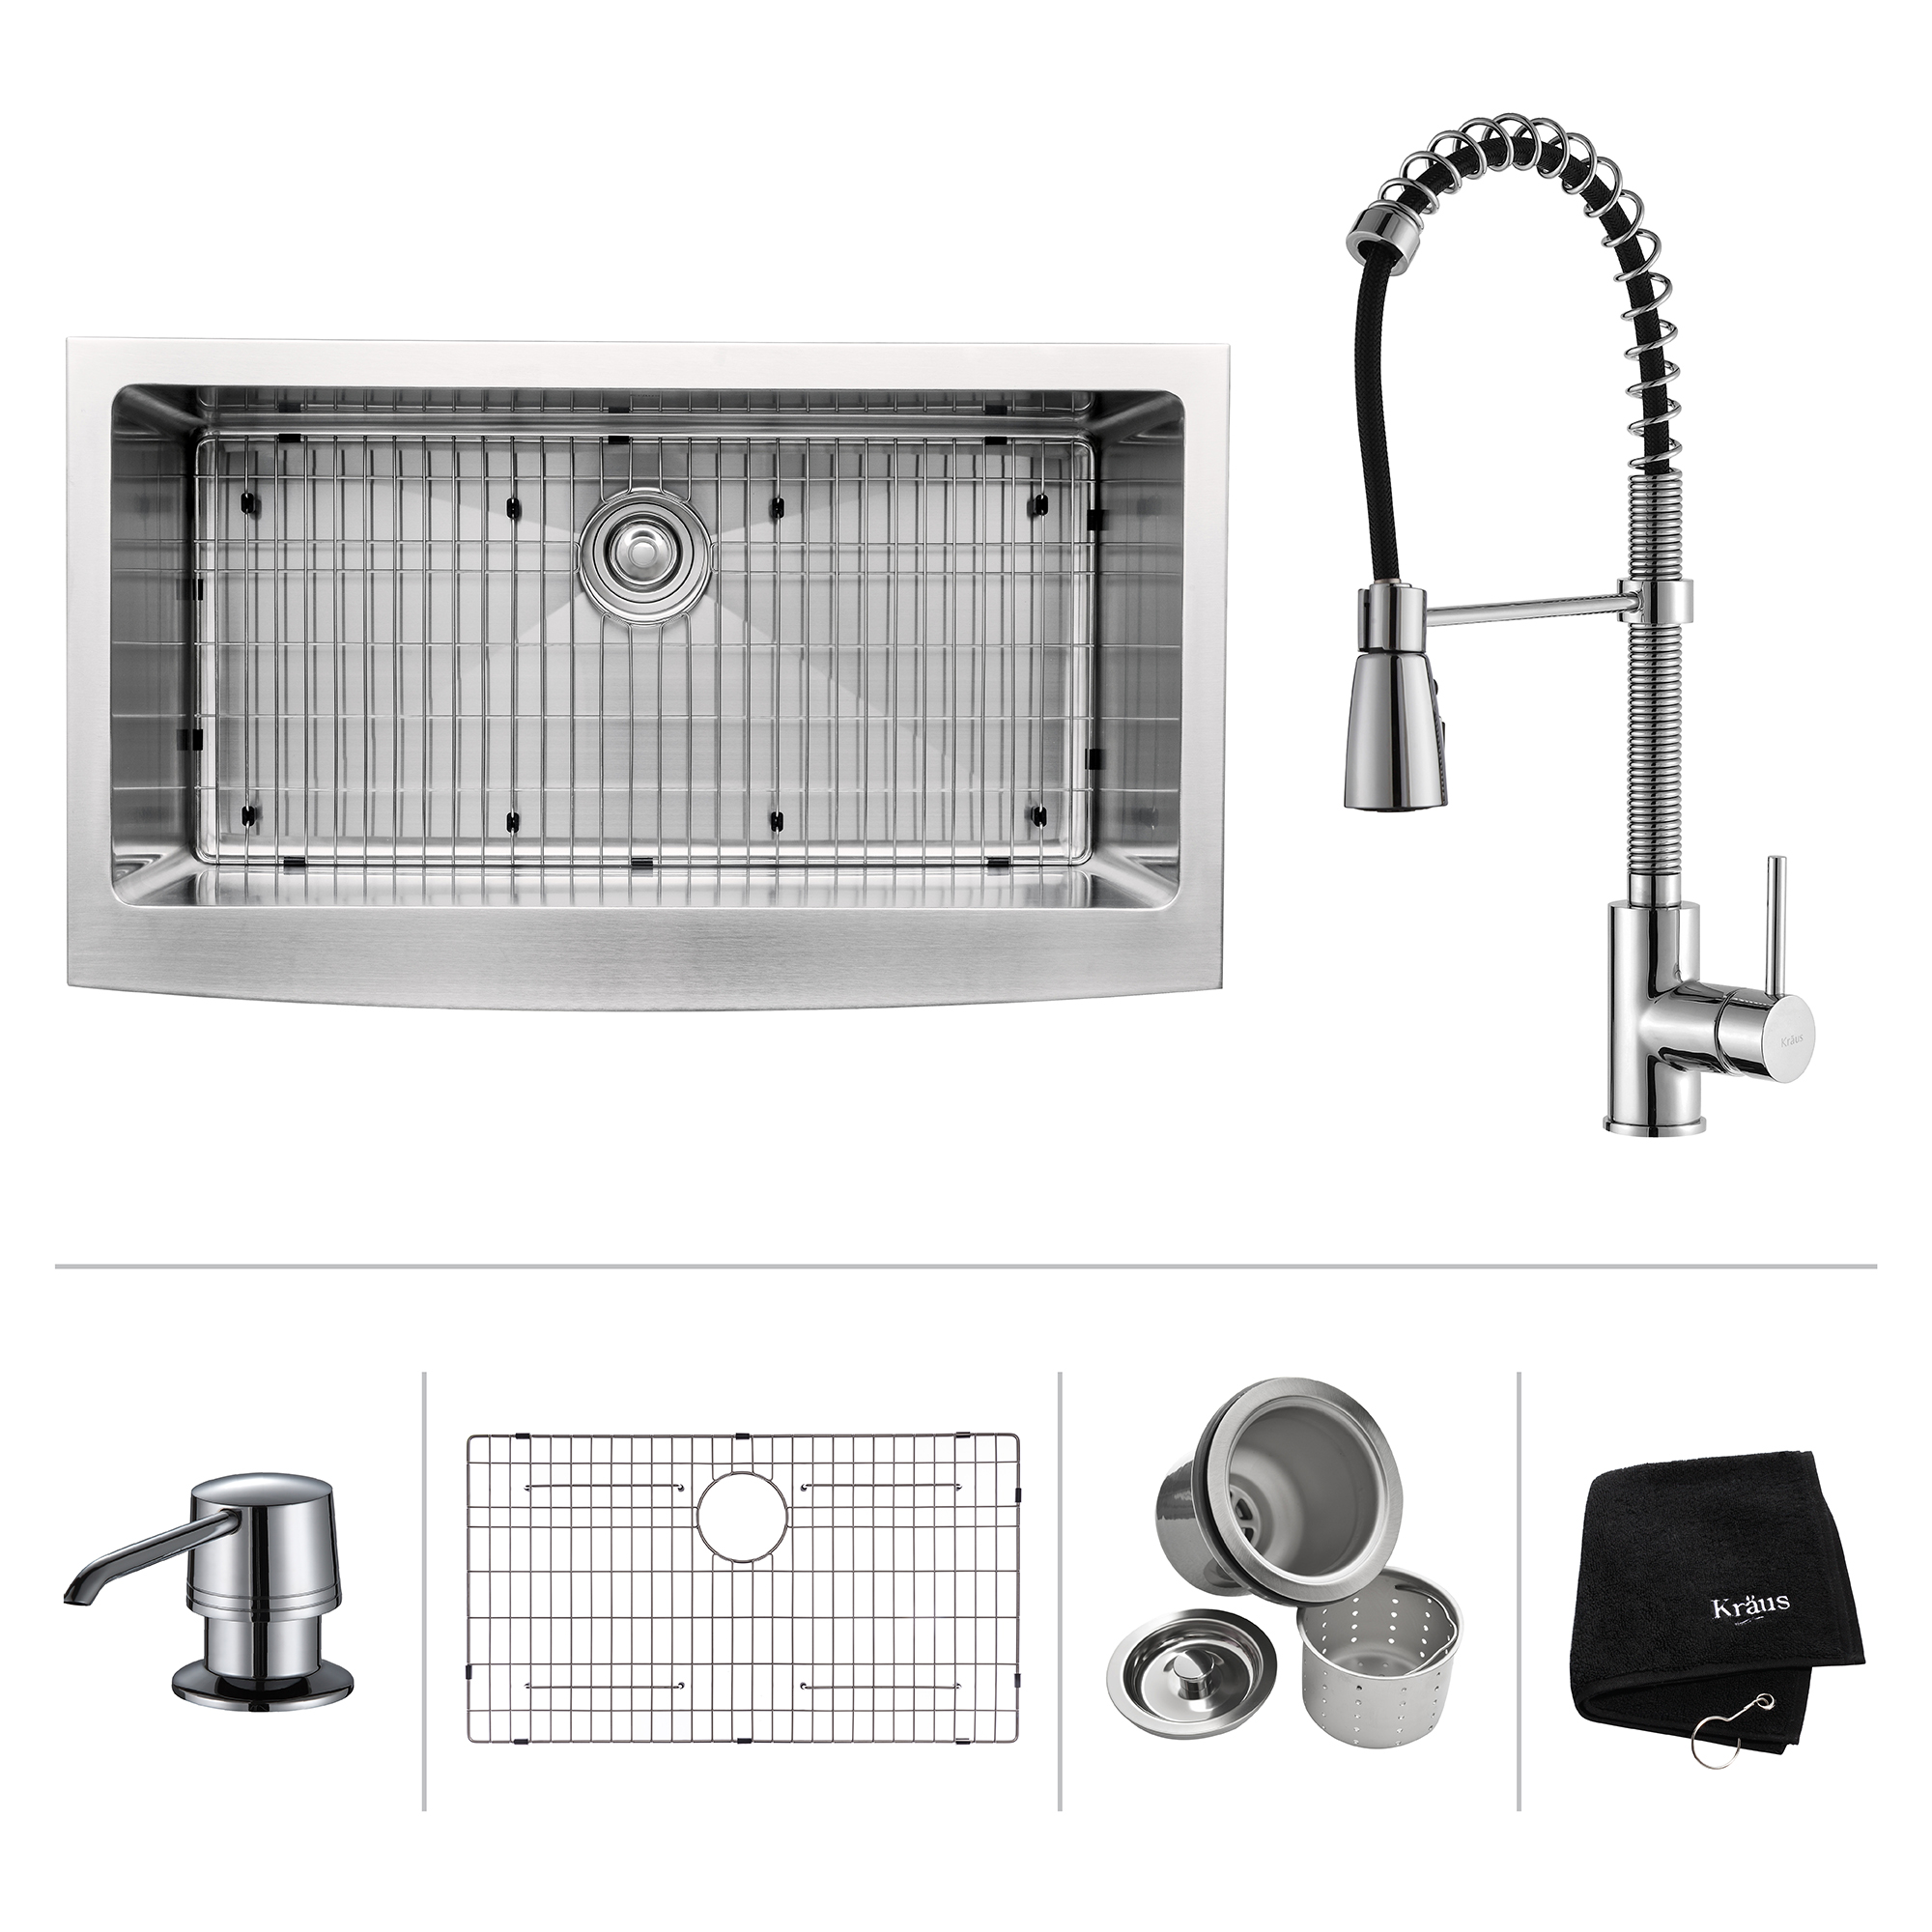 KRAUS 36 Inch Farmhouse Single Bowl Stainless Steel Kitchen Sink with Commercial Style Kitchen Faucet & Soap Dispenser in Chrome